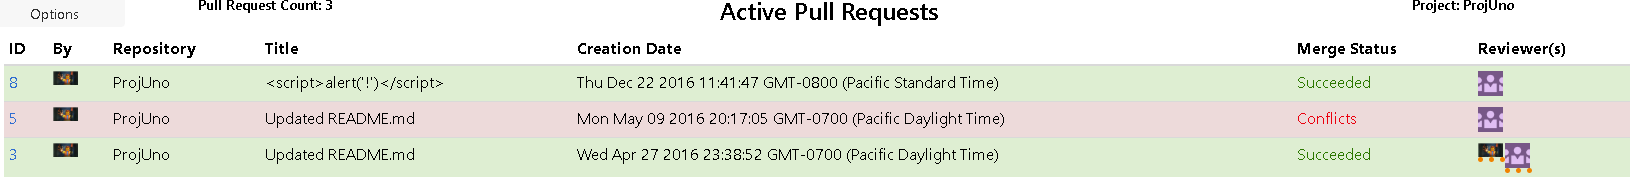 Screenshot of Active Pull Requests